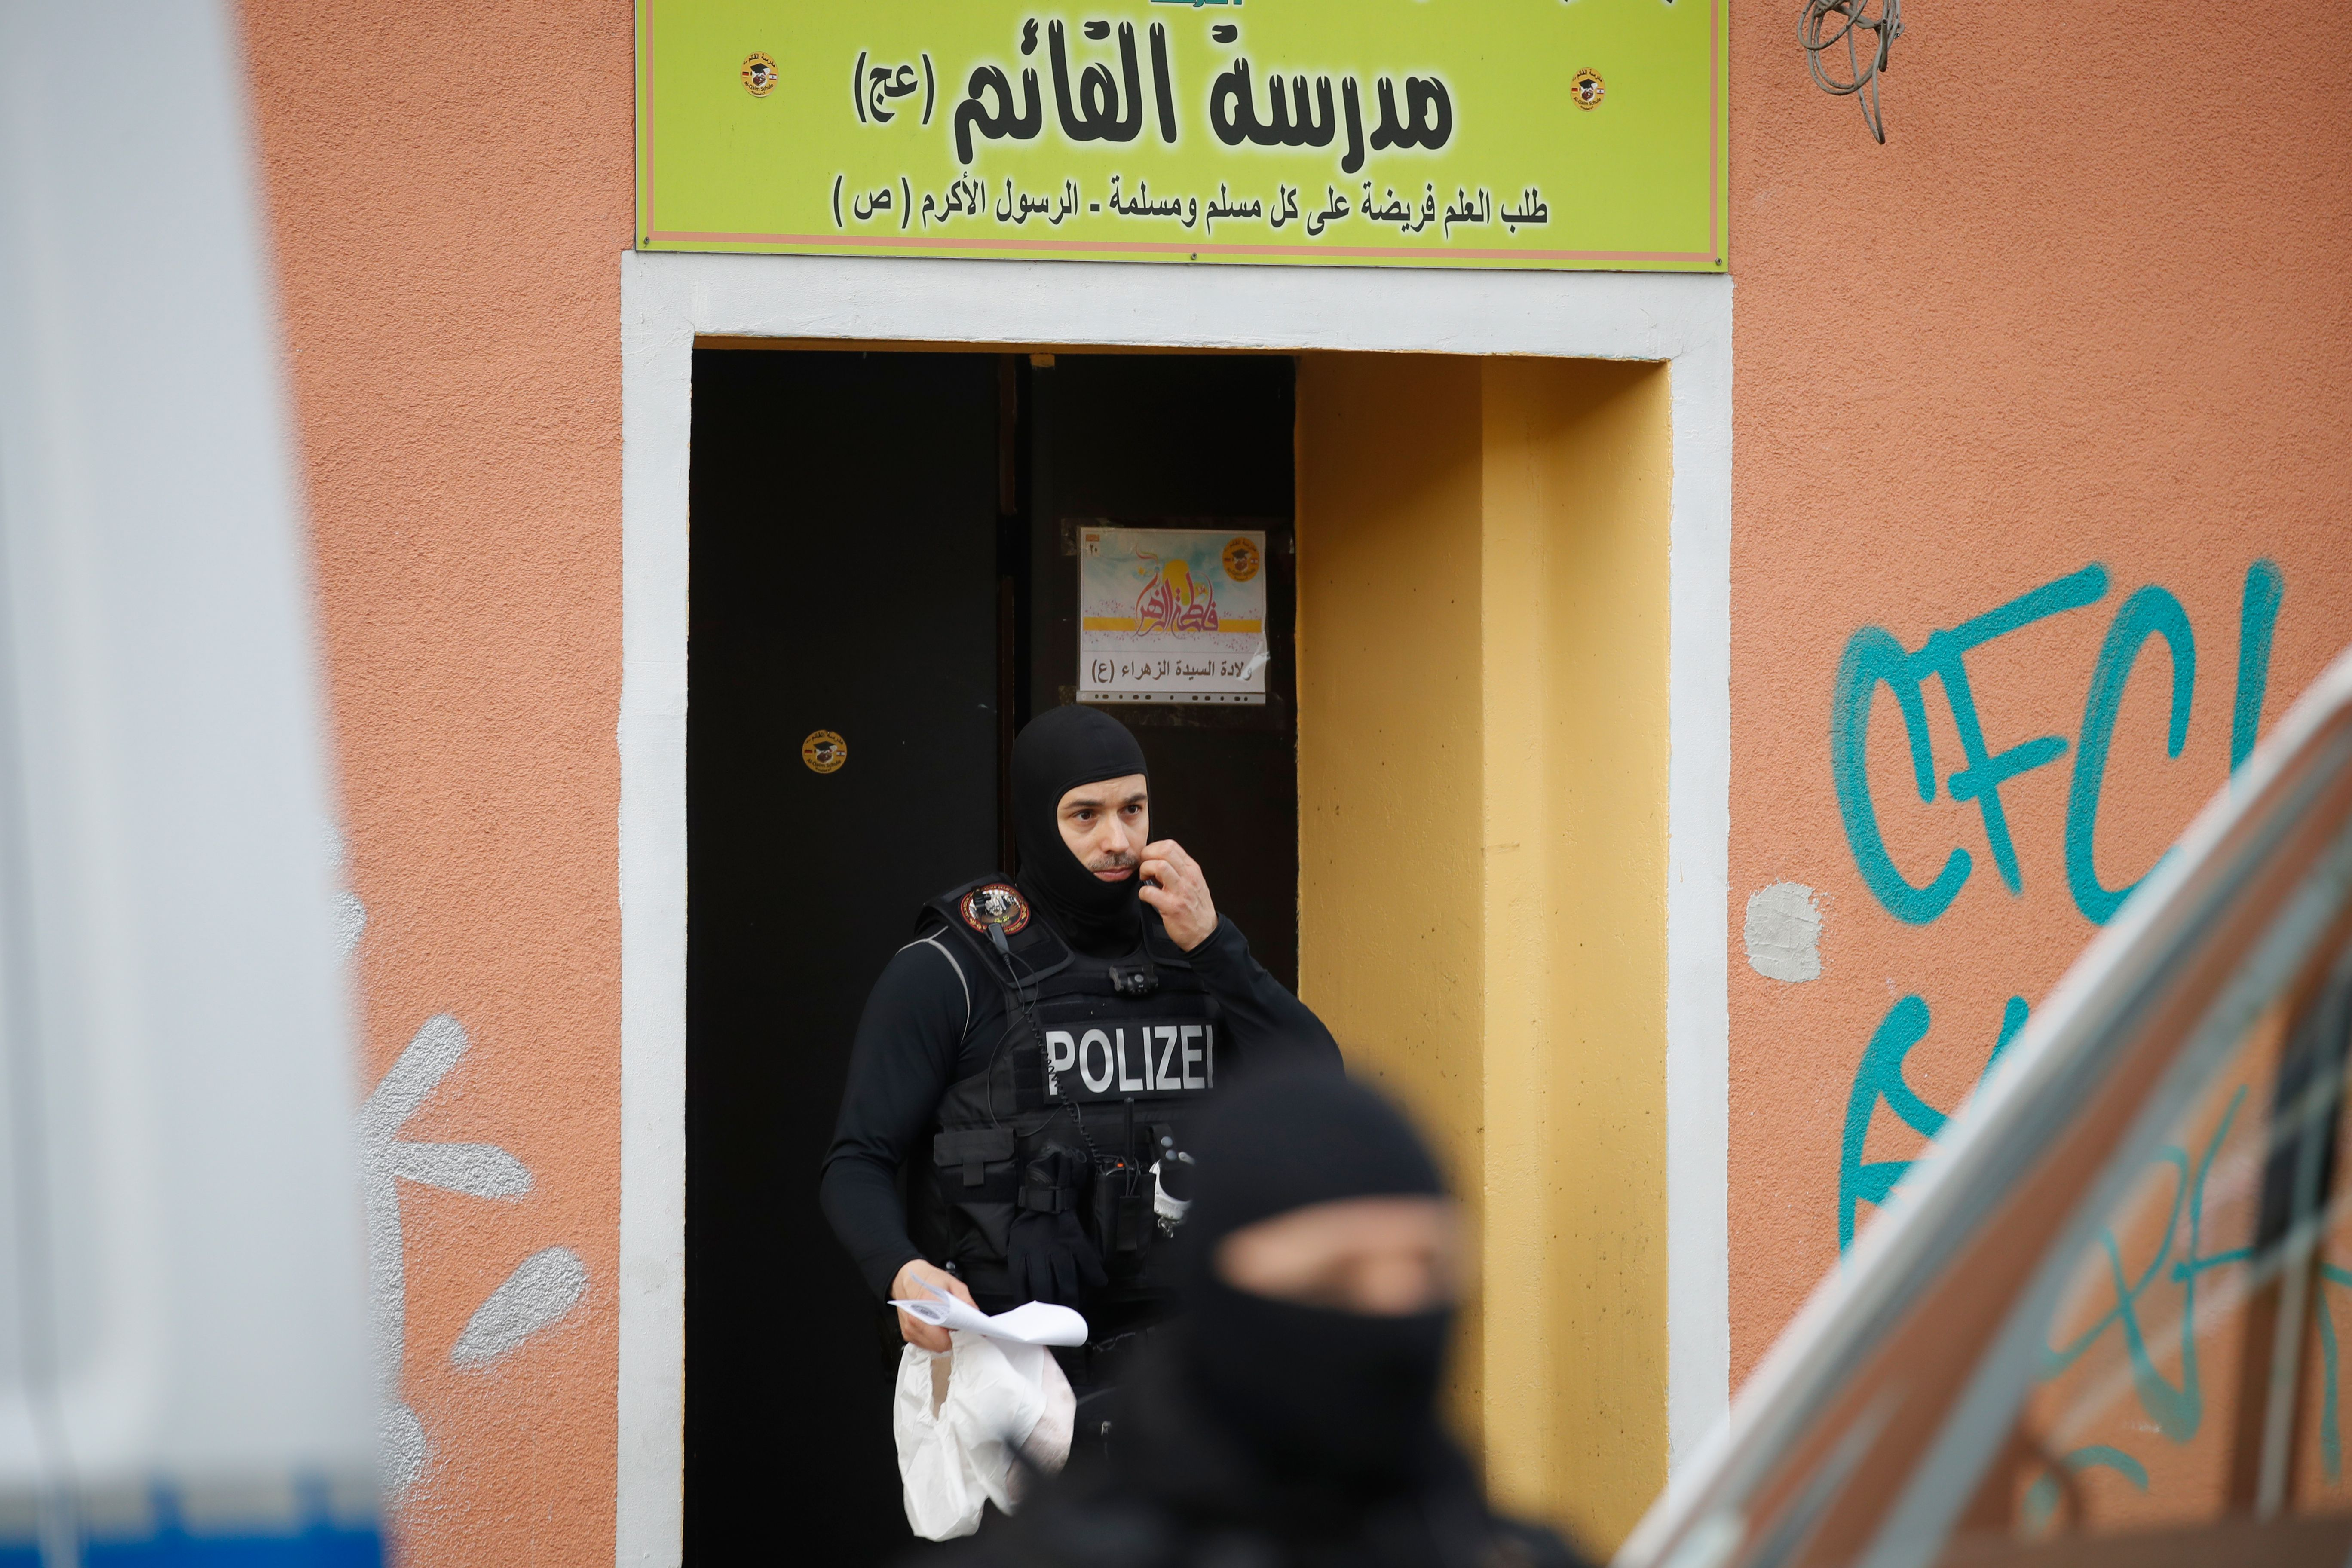 Police officers secure evidences at the Al-Irschad Mosque during a raid on April 30, 2020 in Berlin. (Photo by ODD ANDERSEN/AFP via Getty Images)